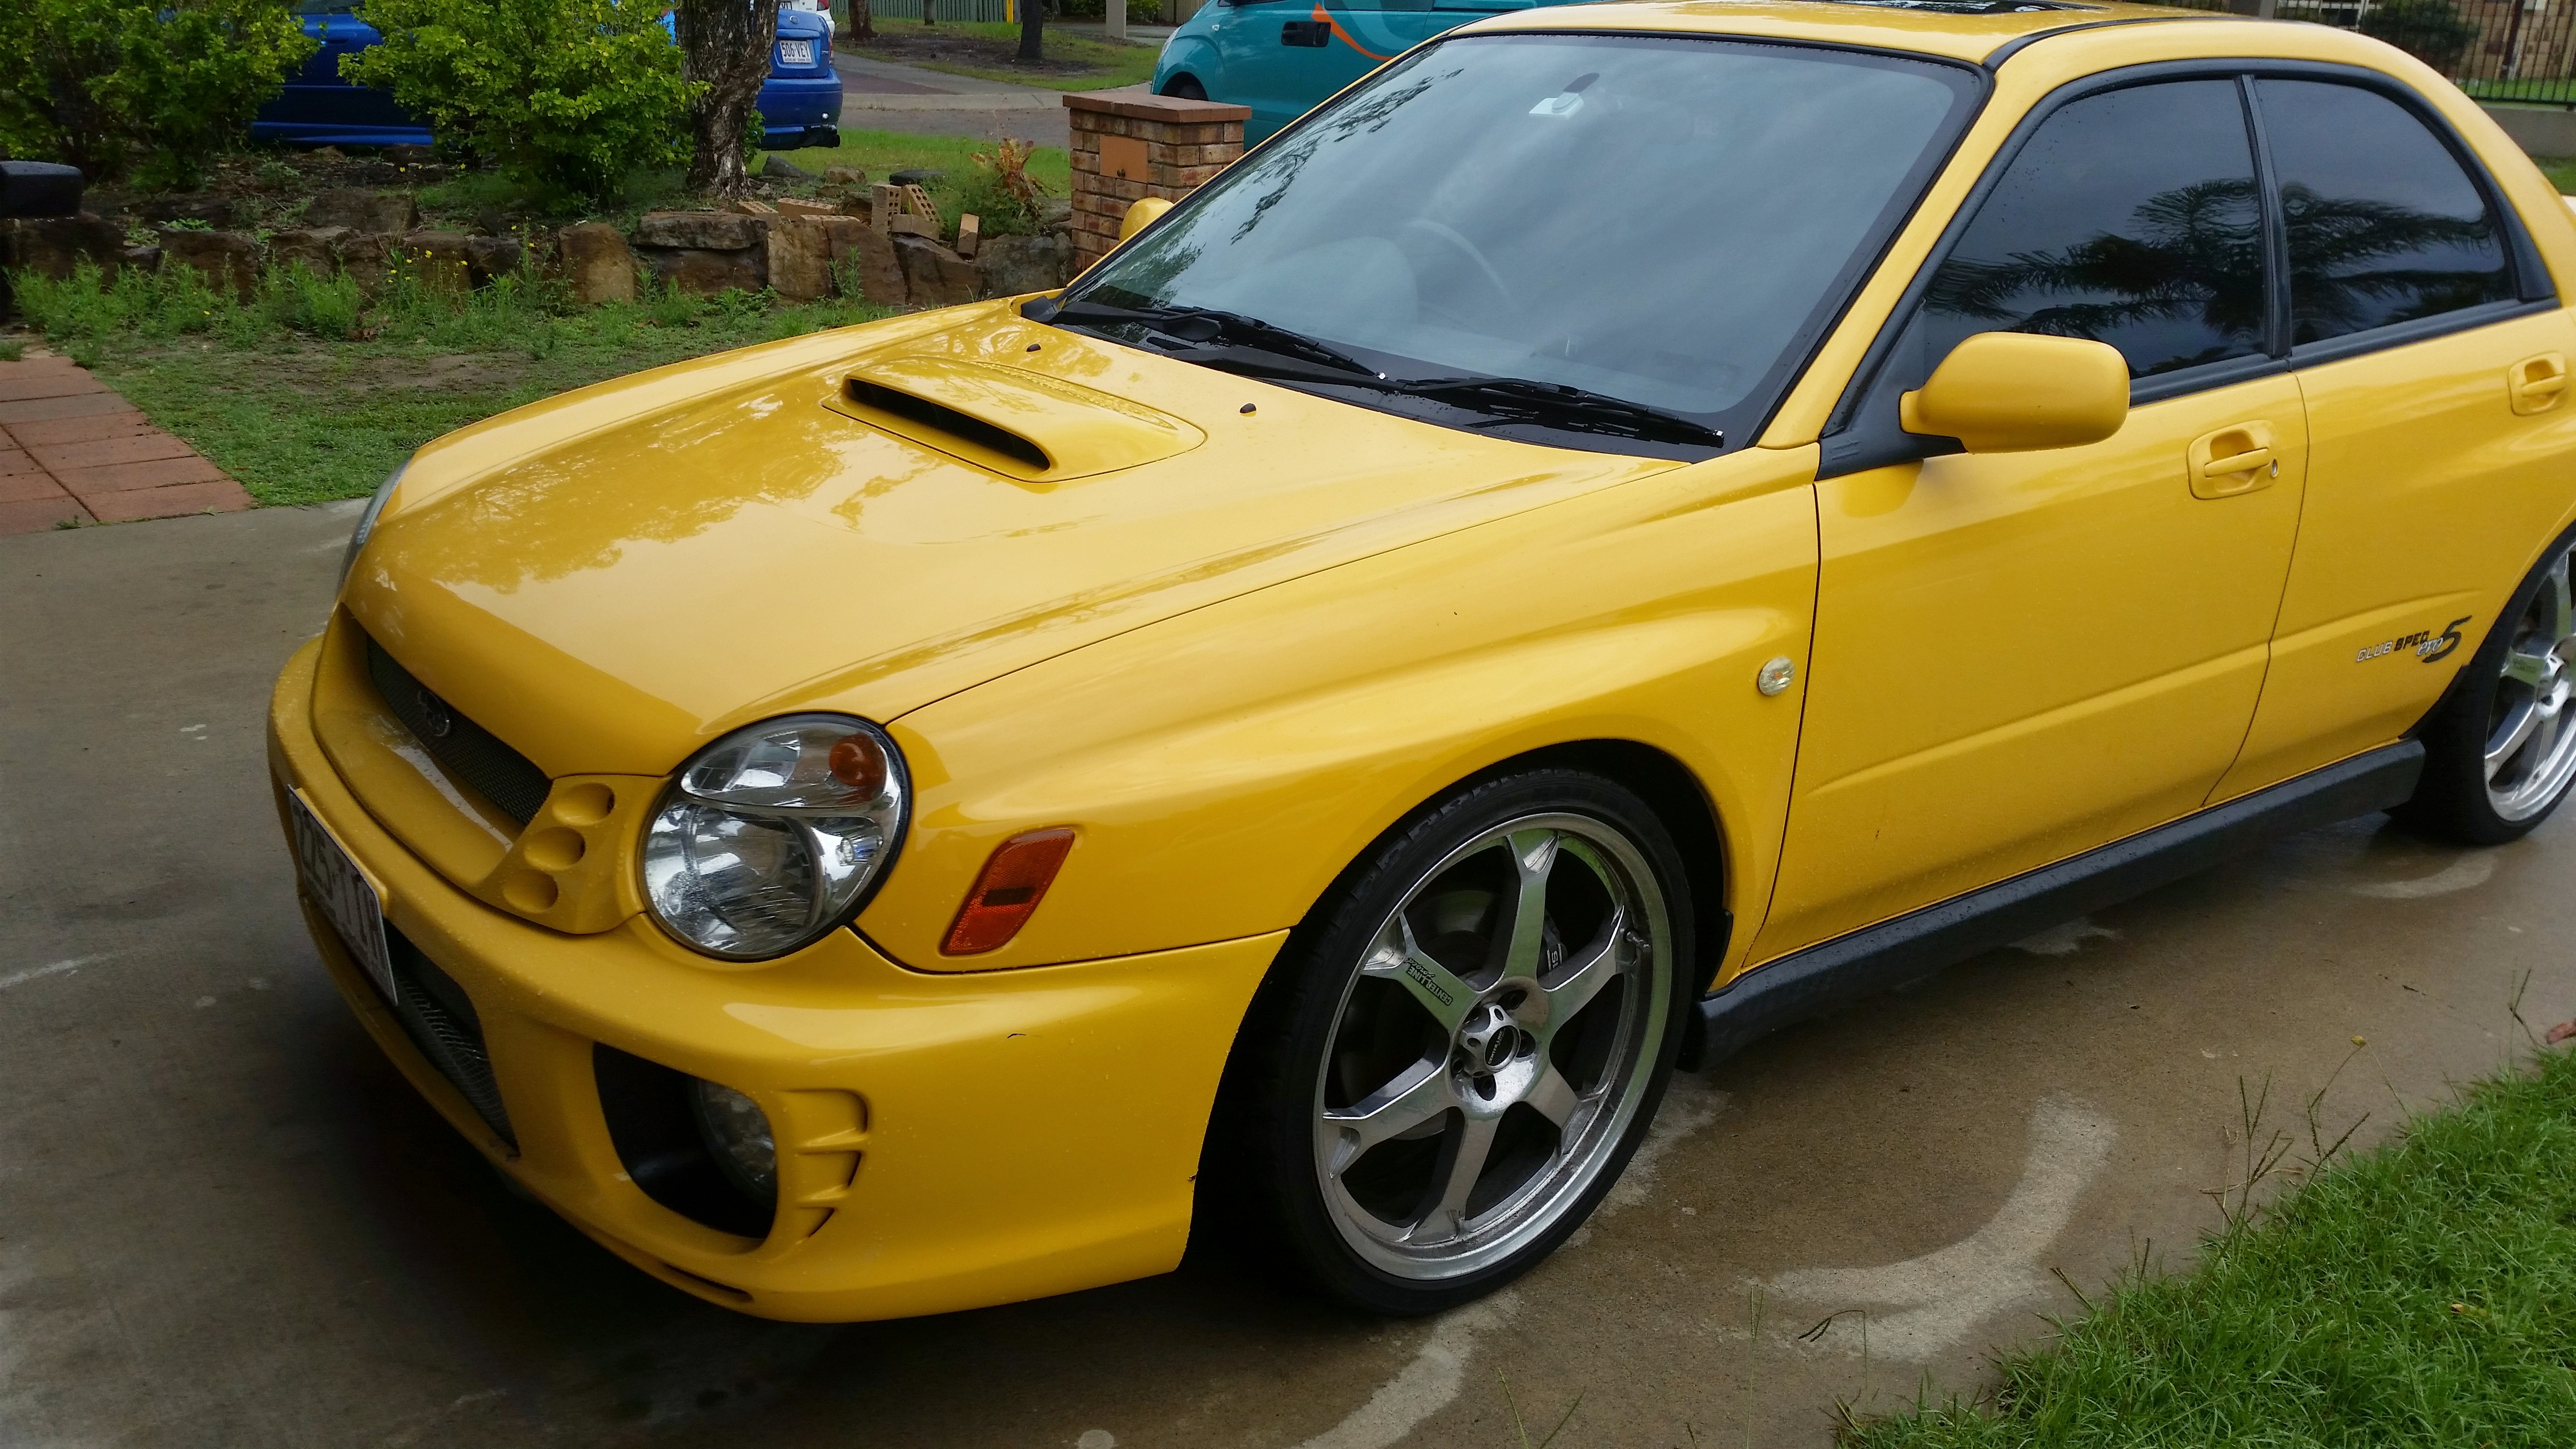 2002 subaru impreza wrx club spec evo 6 my03 car sales. Black Bedroom Furniture Sets. Home Design Ideas